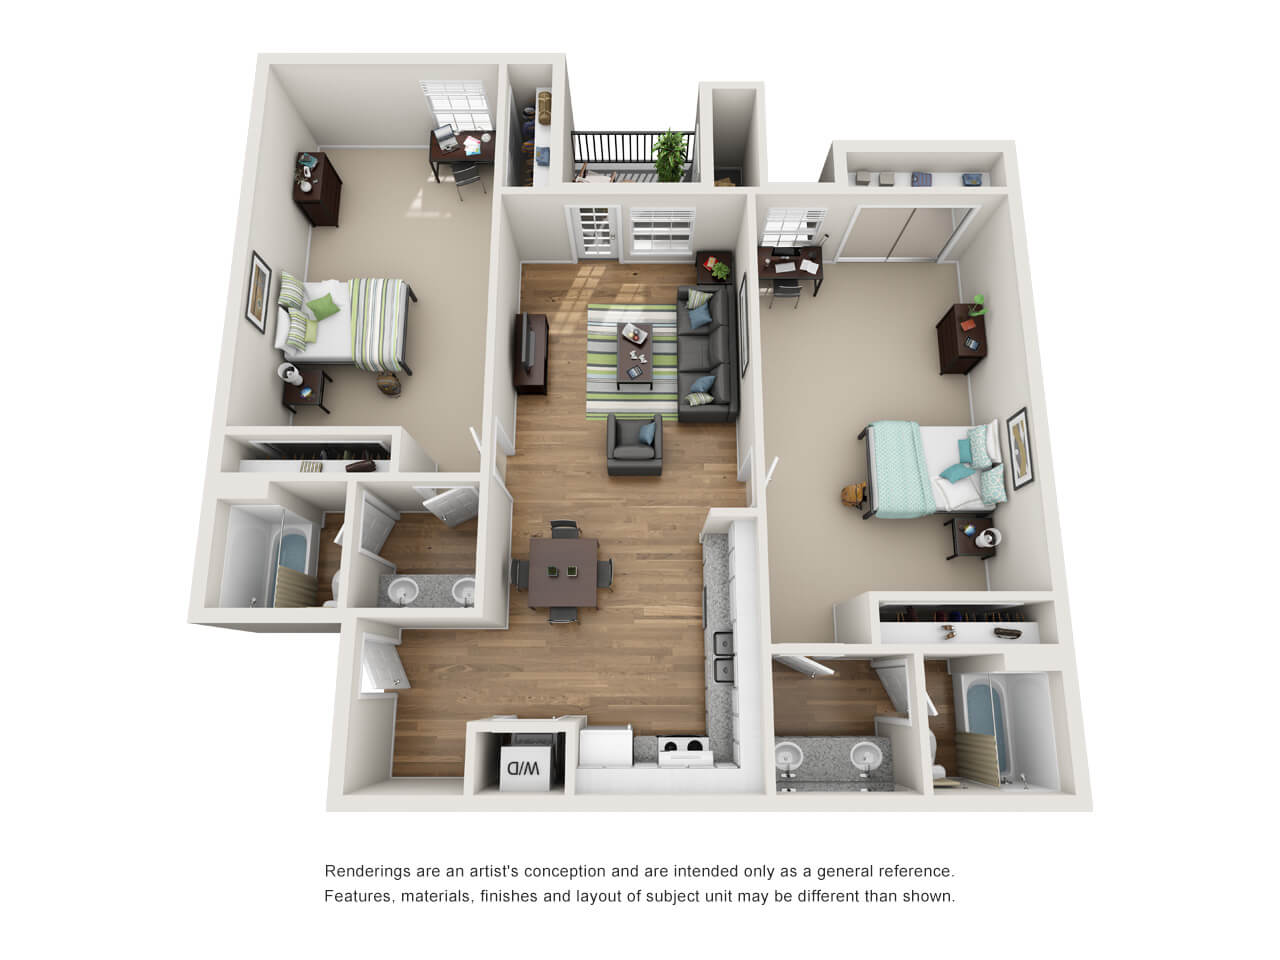 Floor plan of a two-bedroom student apartment